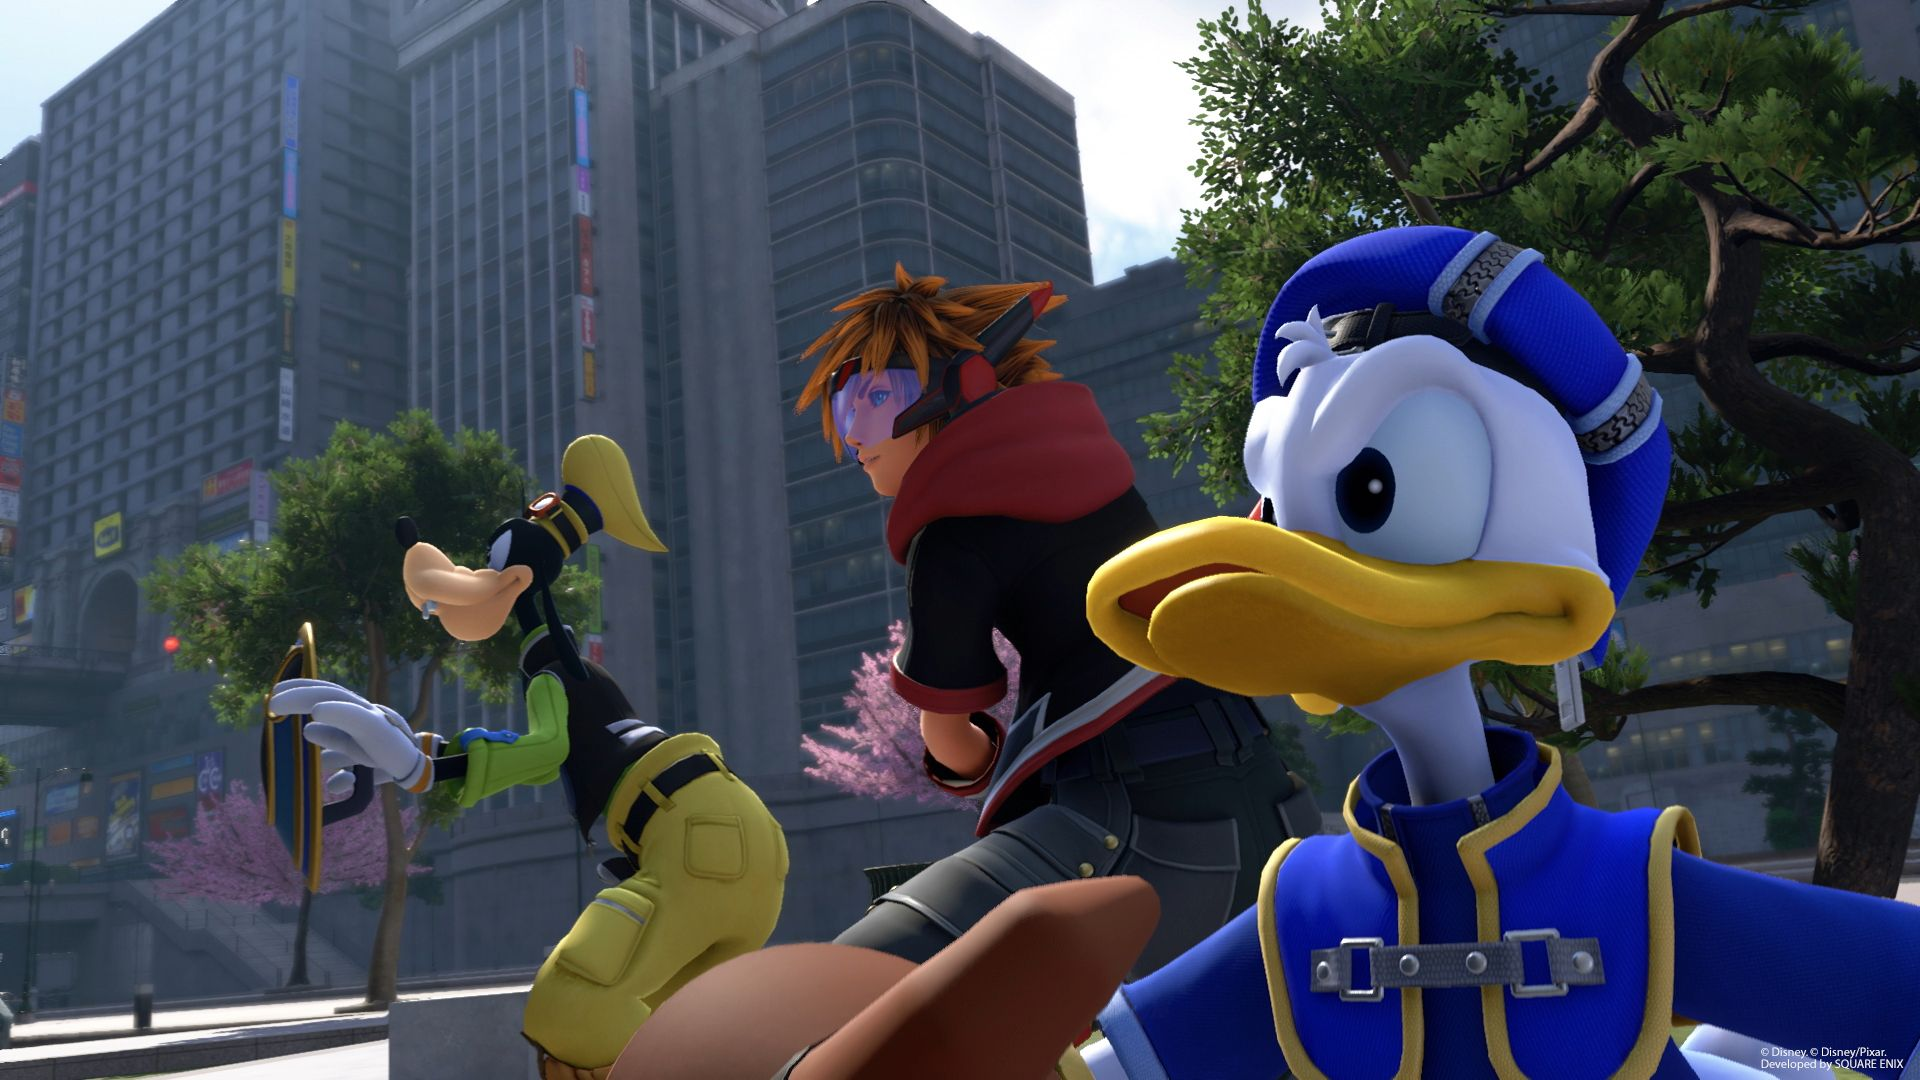 Kingdom Hearts 3 Trailer Features Sora And Friends